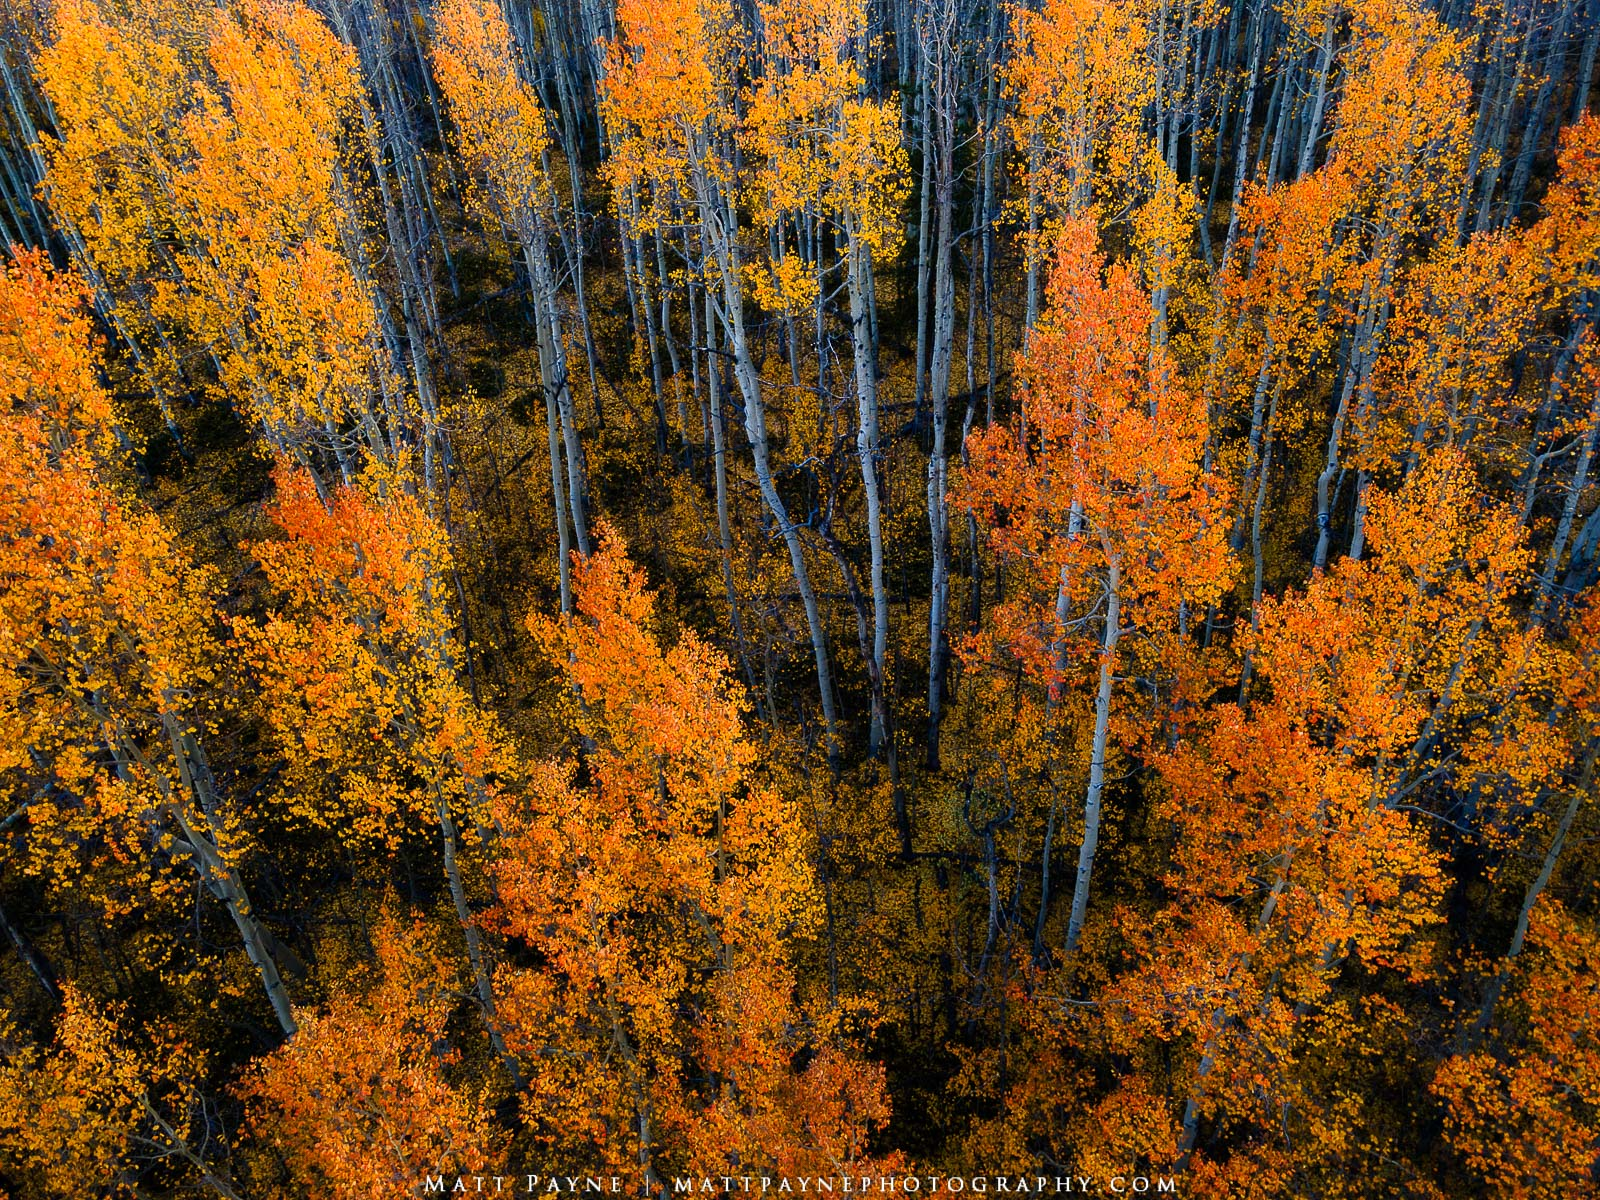 Aspen forests in autumn in Colorado are so amazing to photograph. I honestly just can't get enough of it. It is my favorite time...